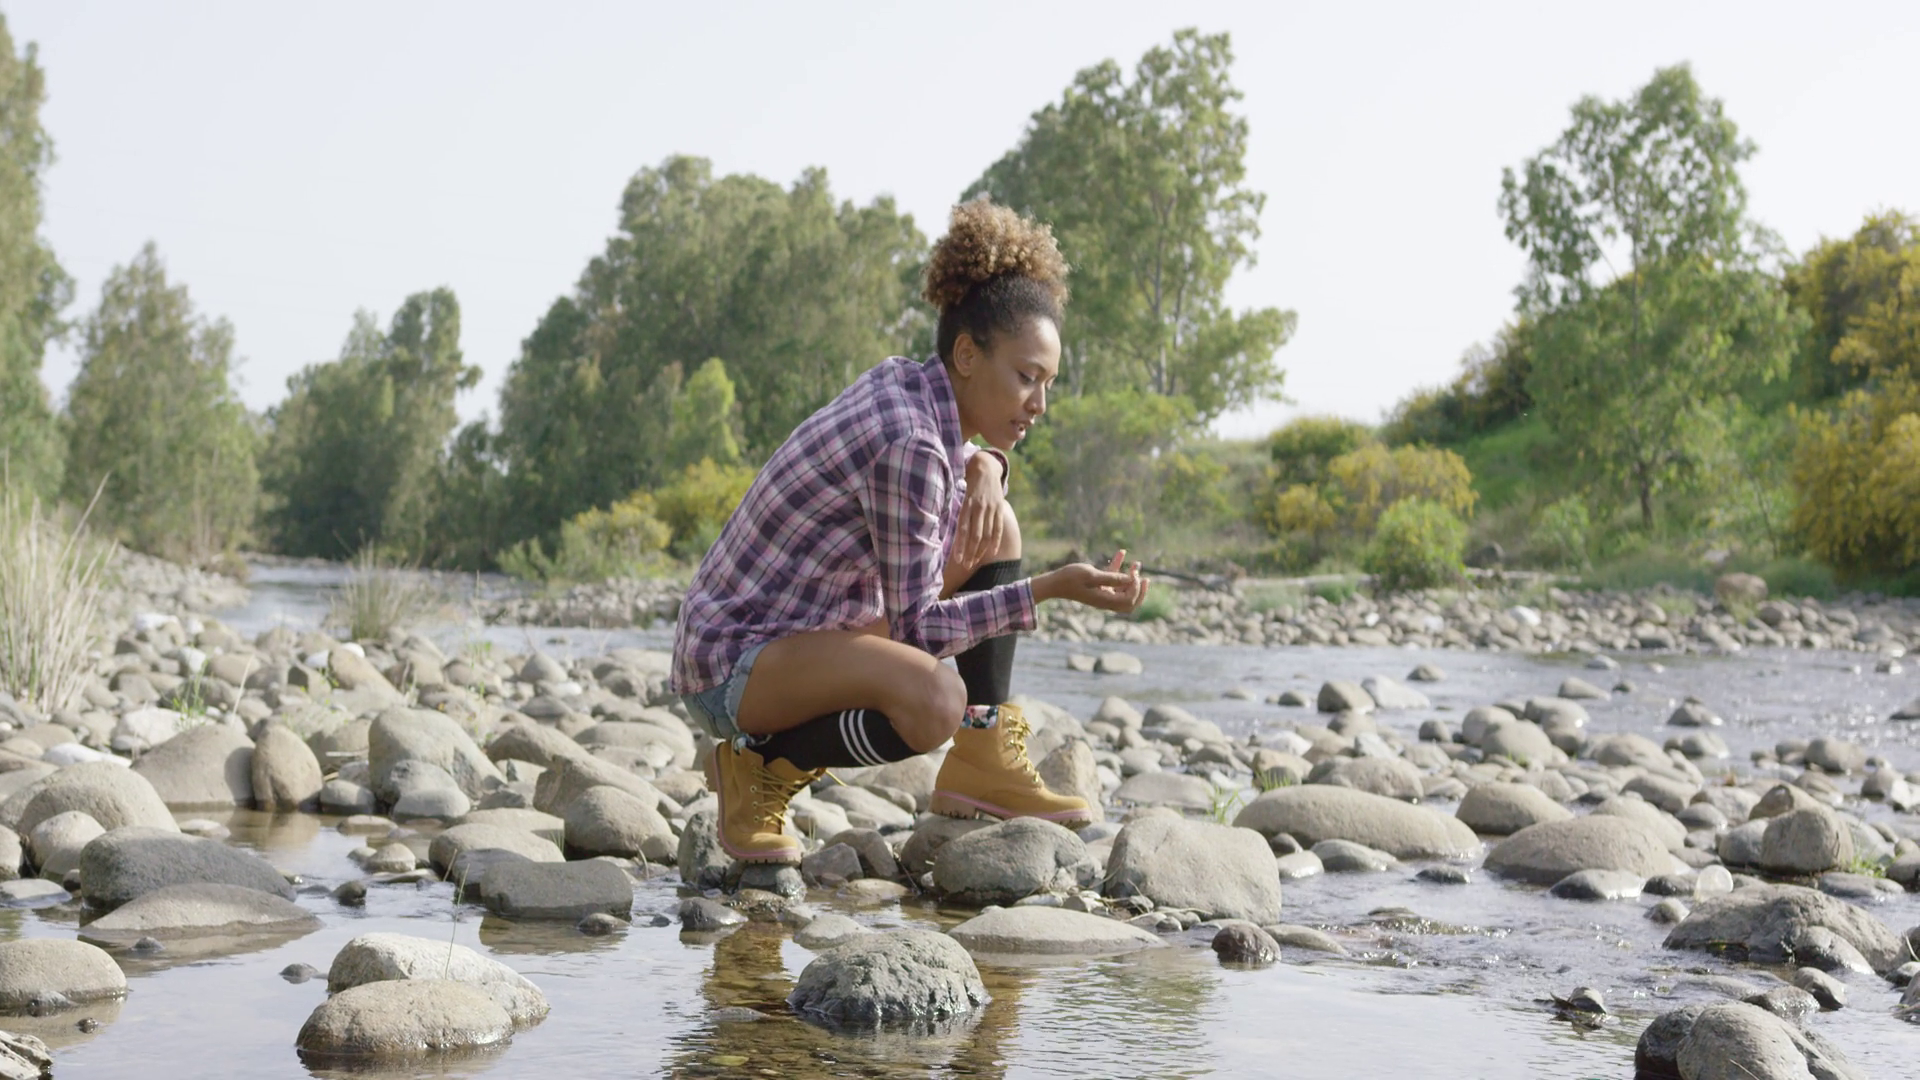 videoblocks-young-woman-sitting-among-creek-on-rock-and-throwing-small-stones-in-water-with-trees-on-background_h2xowpersg_thumbnail-full01.png